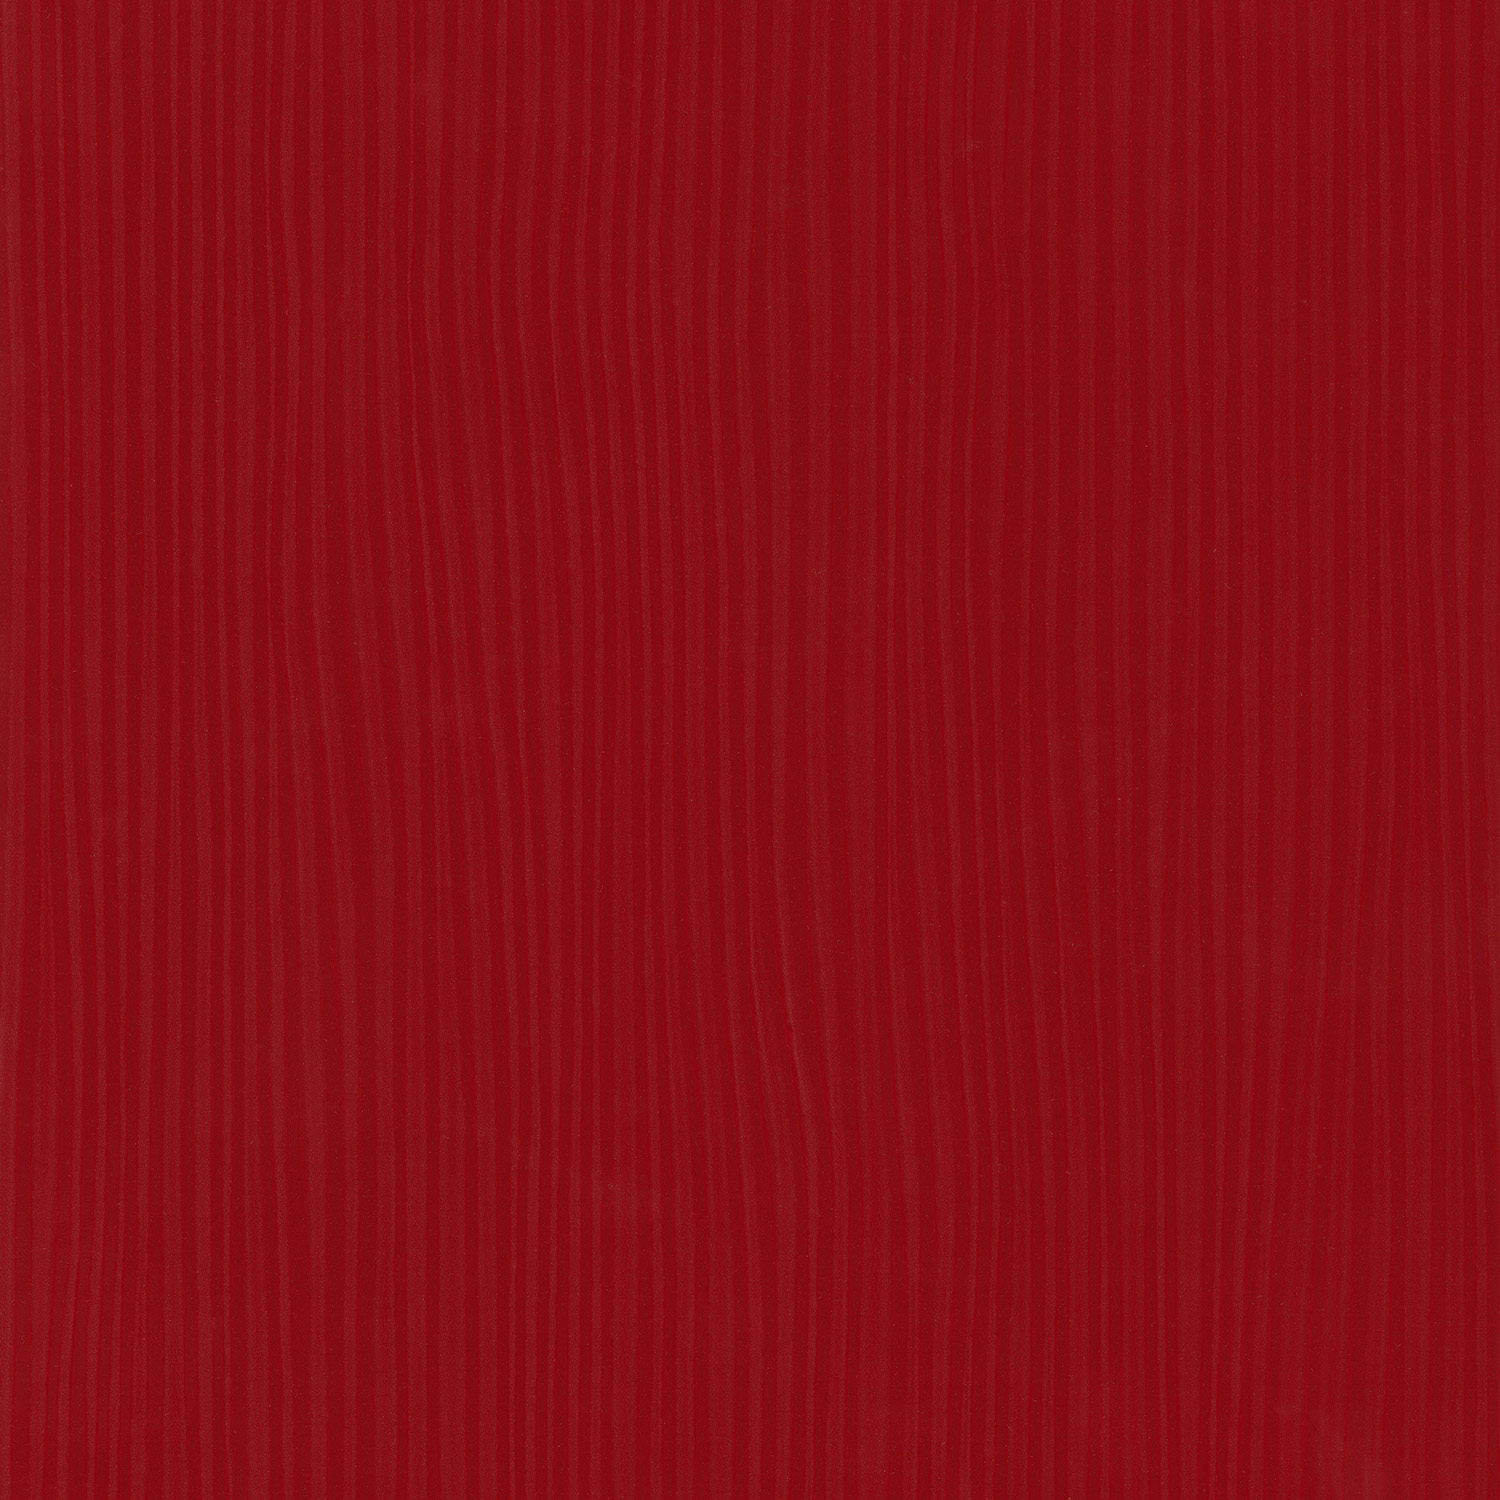 3D Painted Fiberboard Red / Red 10